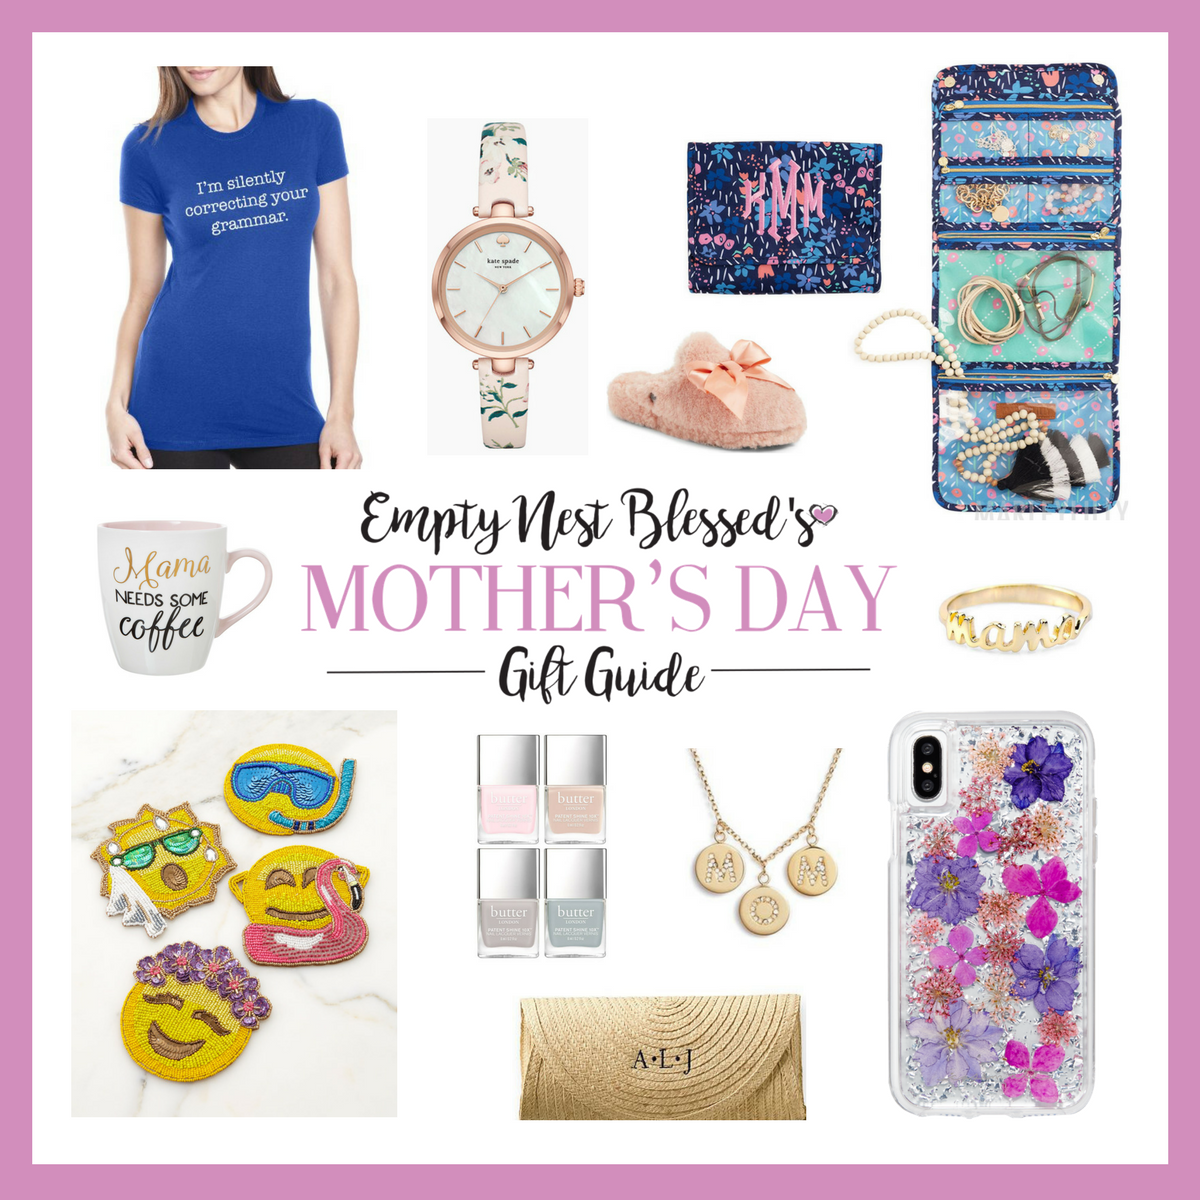 Empty Nest Blessed's Mother's Day Gift Guide